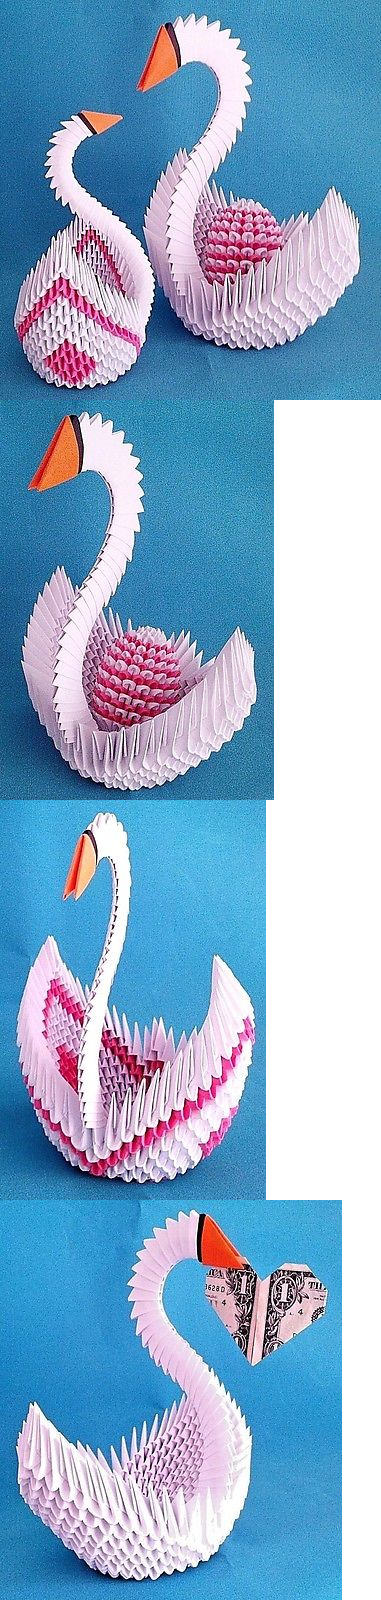 Hand-made 3D Origami Swan A Great Gift!